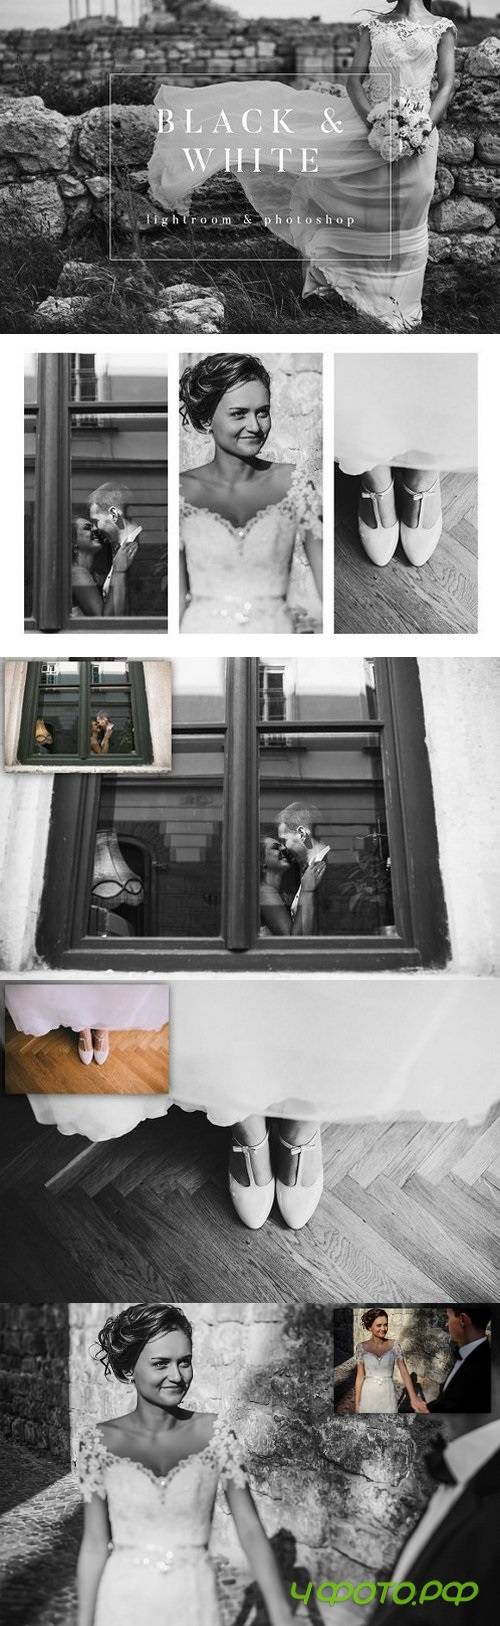 Black & White Wedding Preset LR PS 1344284